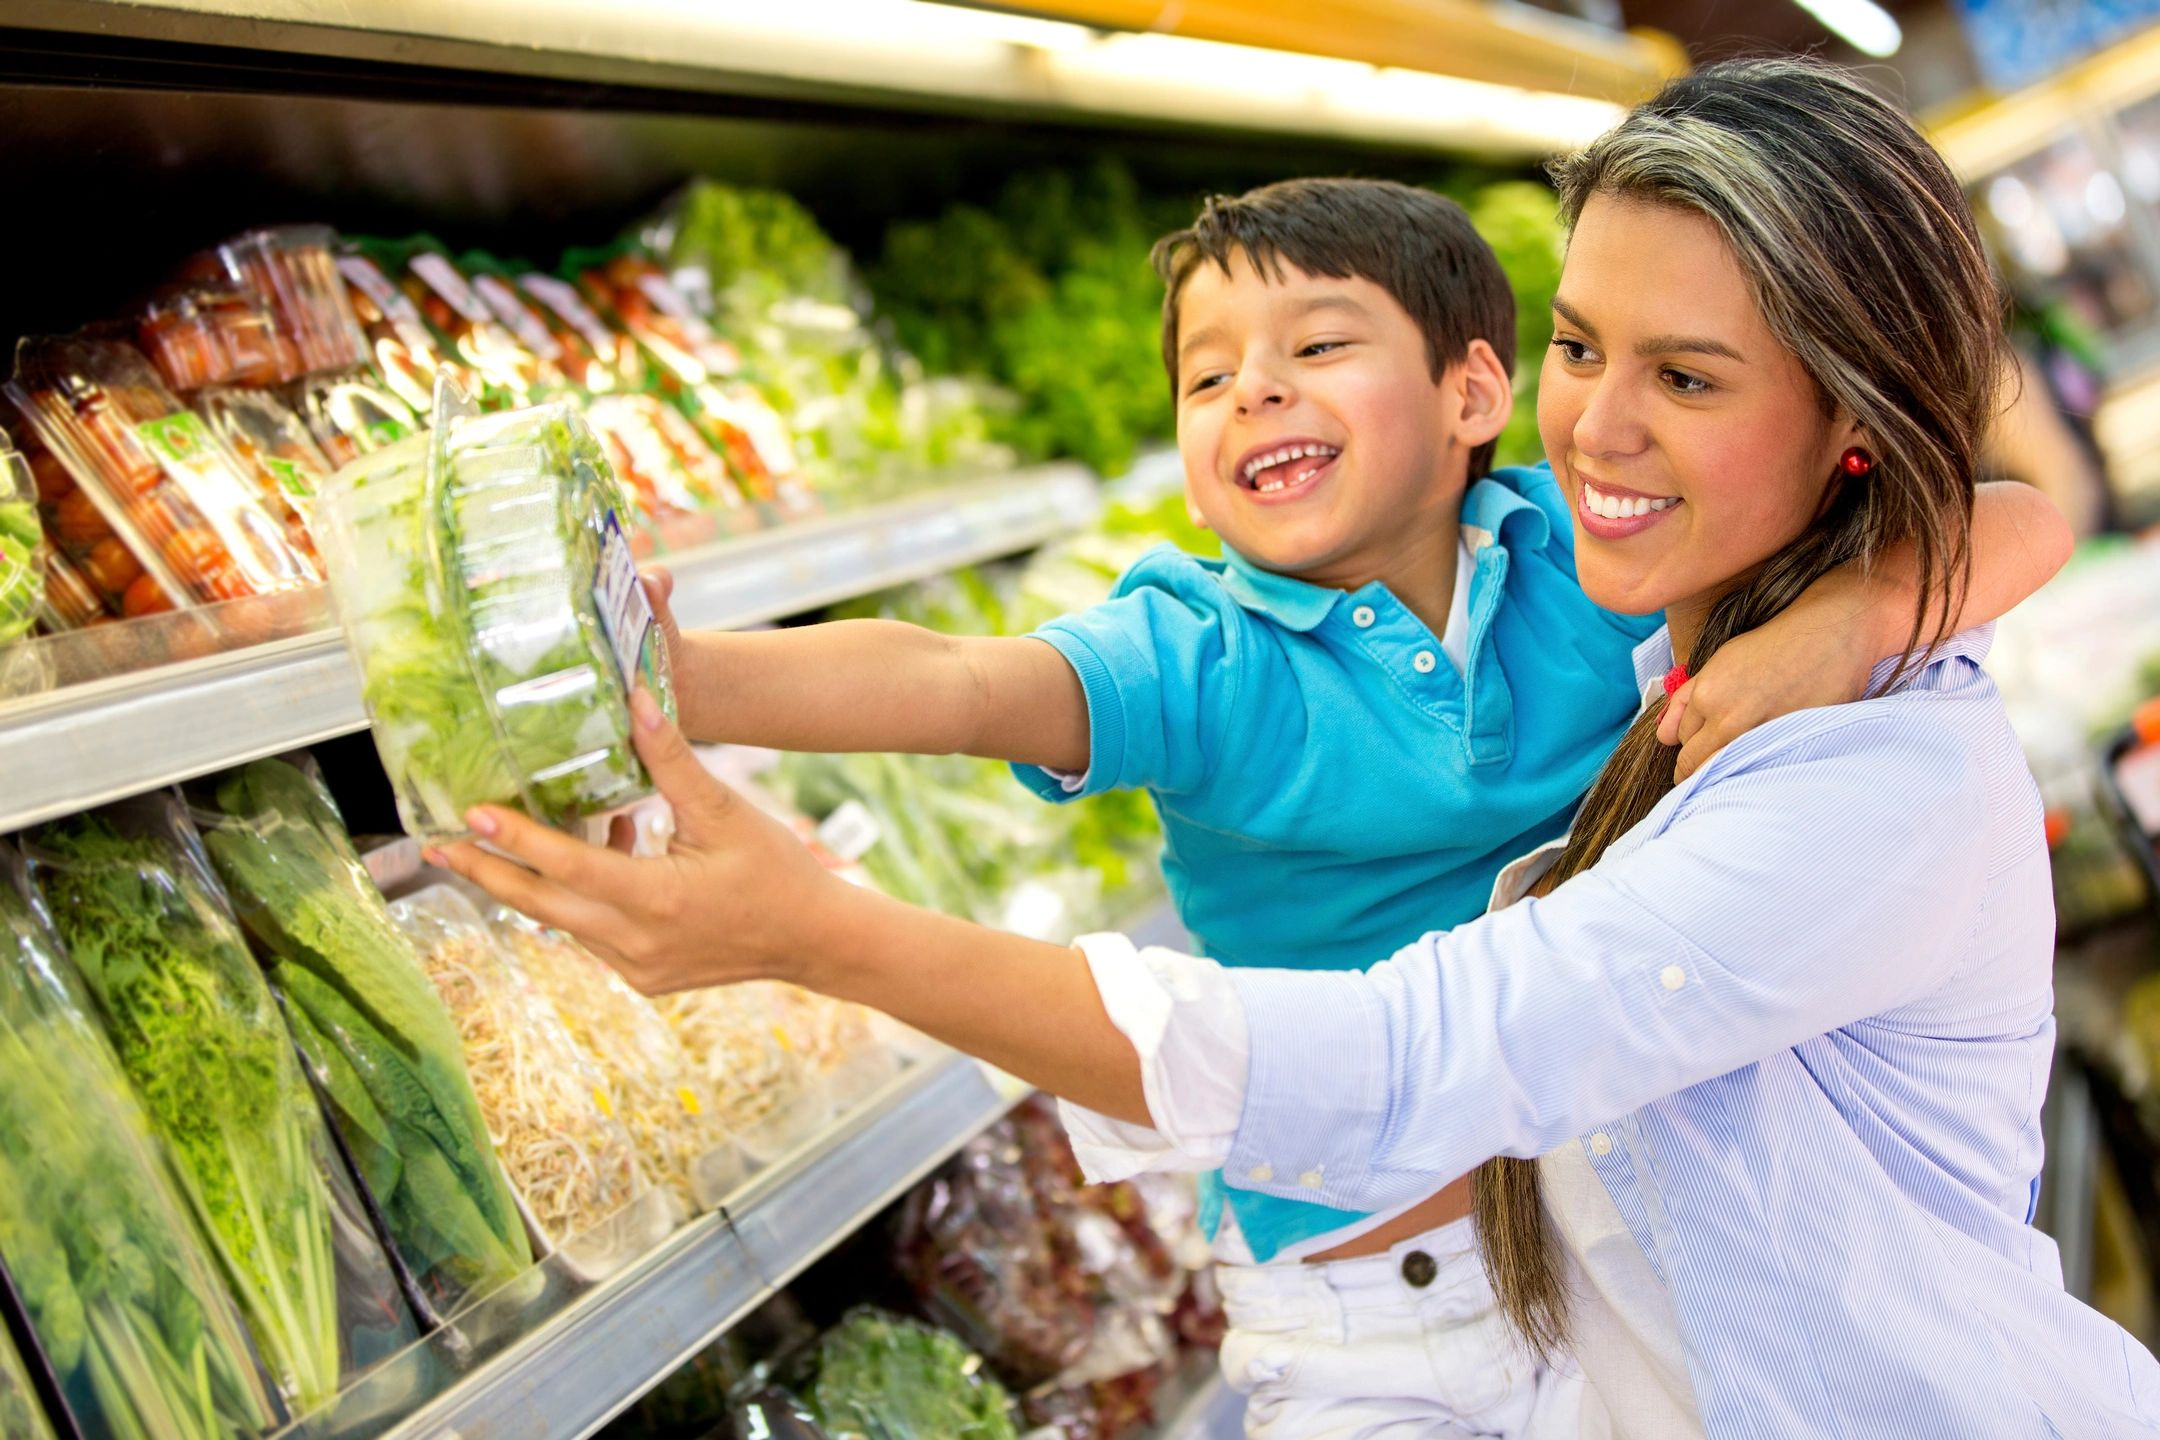 nutrition and tantrums